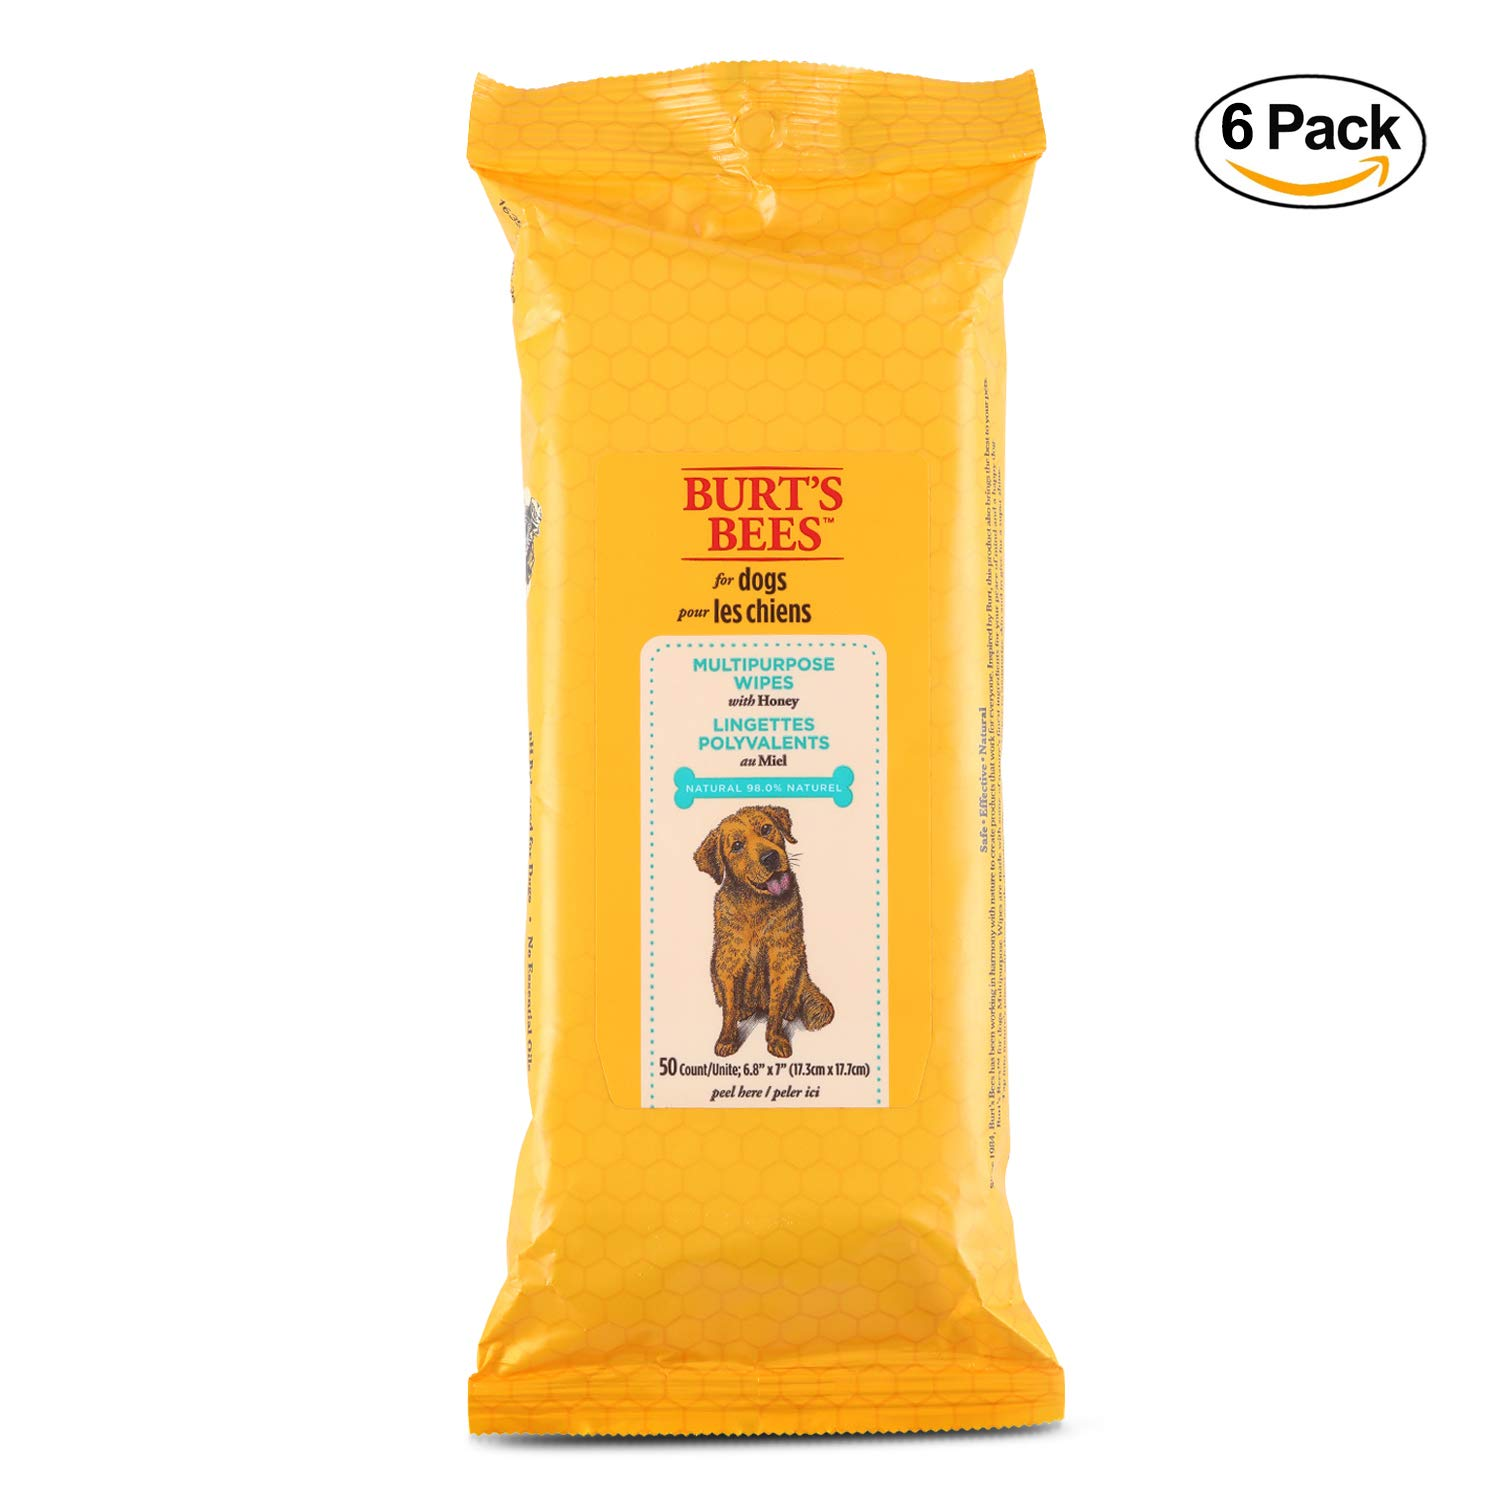 Burt's Bees For Dogs Multipurpose Grooming Wipes | Puppy and Dog Wipes For Cleaning, 50 Count - 6 Pack